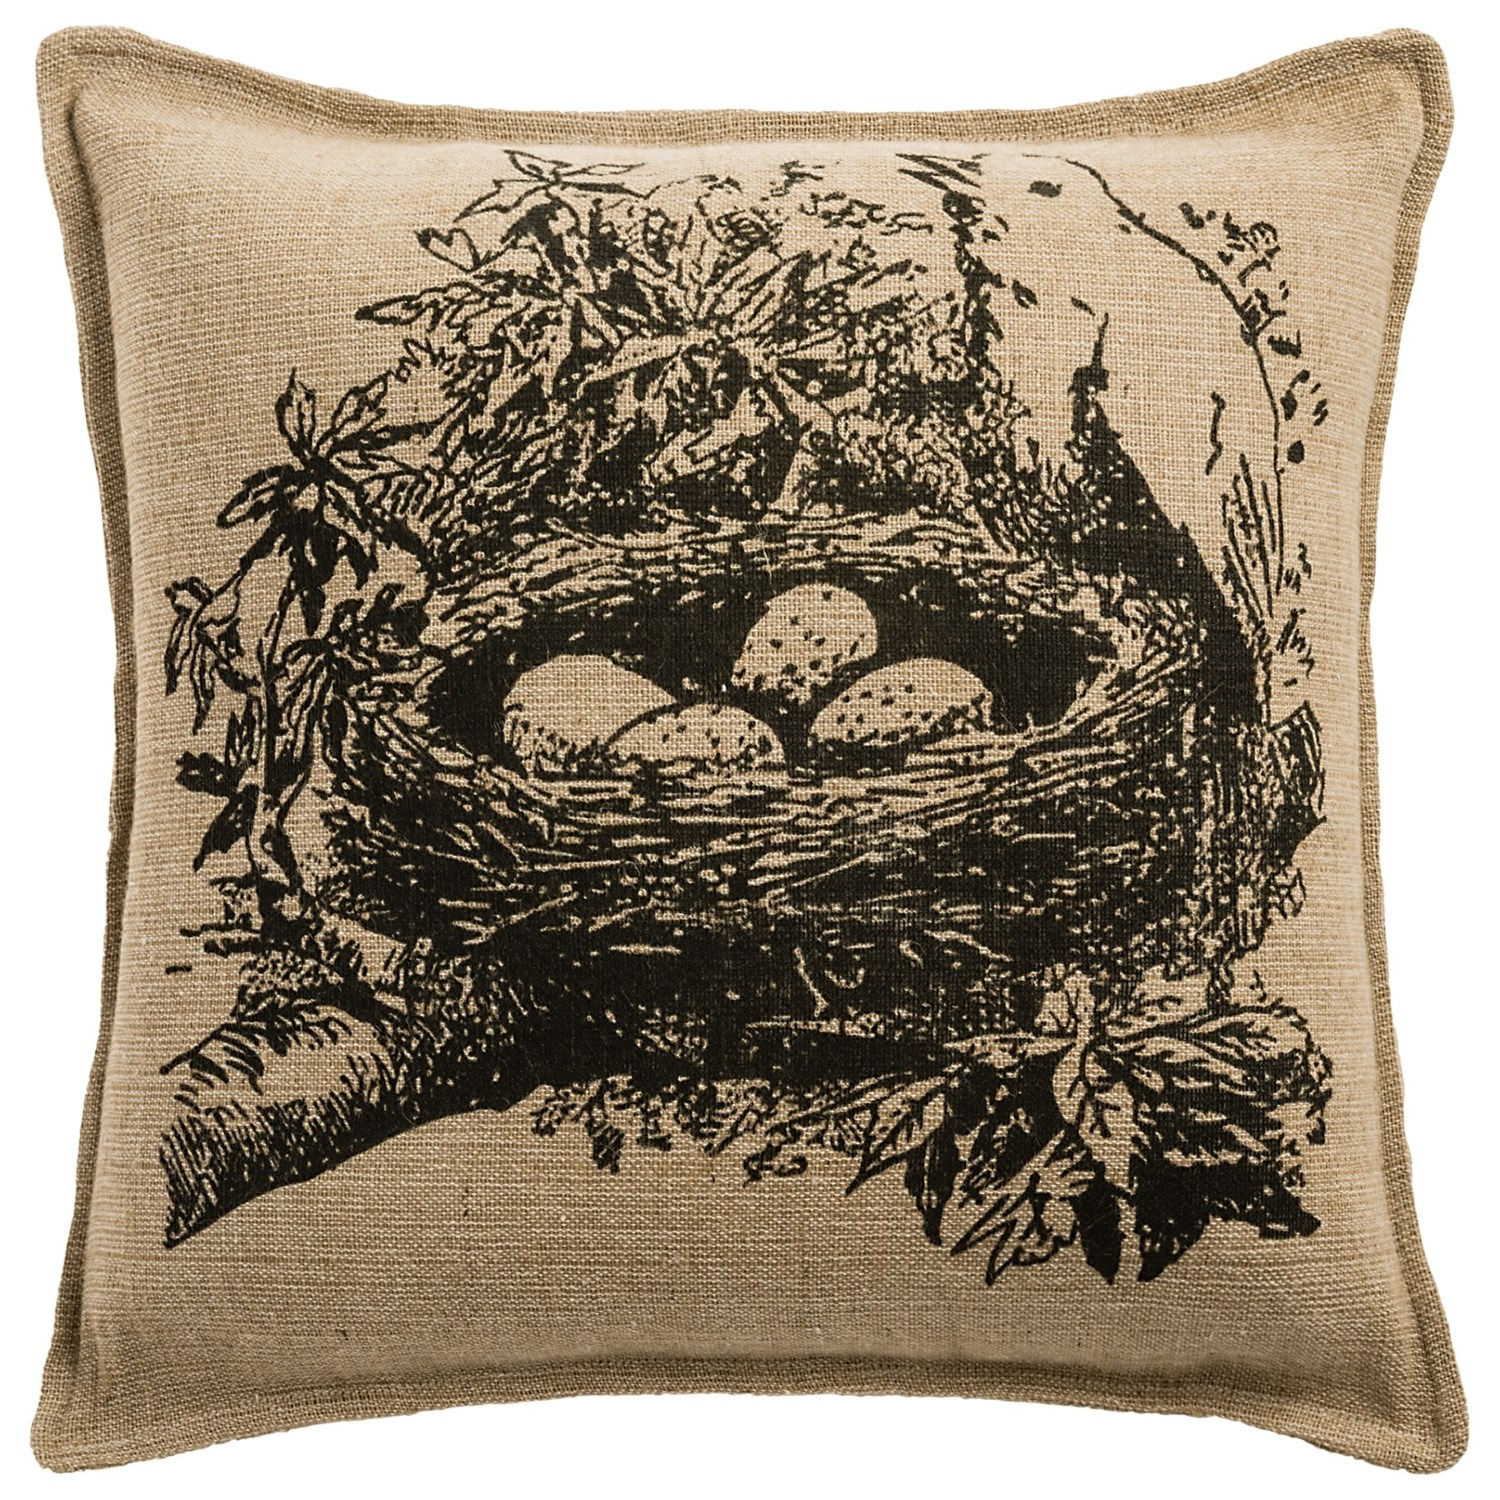 Rizzy Home Bird Collection Decor Pillow 18x18 Save 57